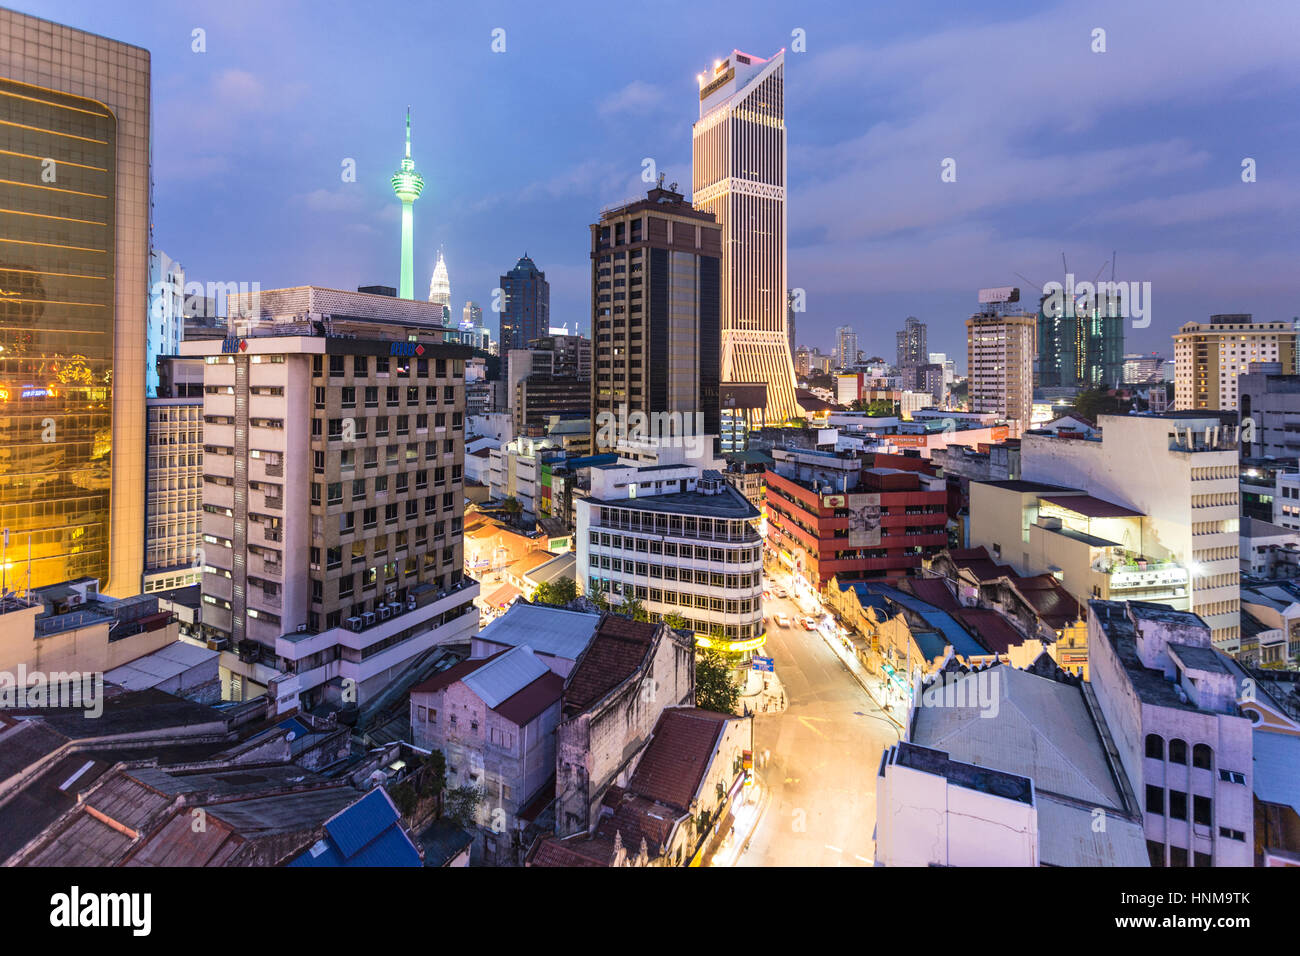 KUALA LUMPUR - An aerial view of the night on the business district of Kuala Lumpur, Malaysia capital city, an important - Stock Image